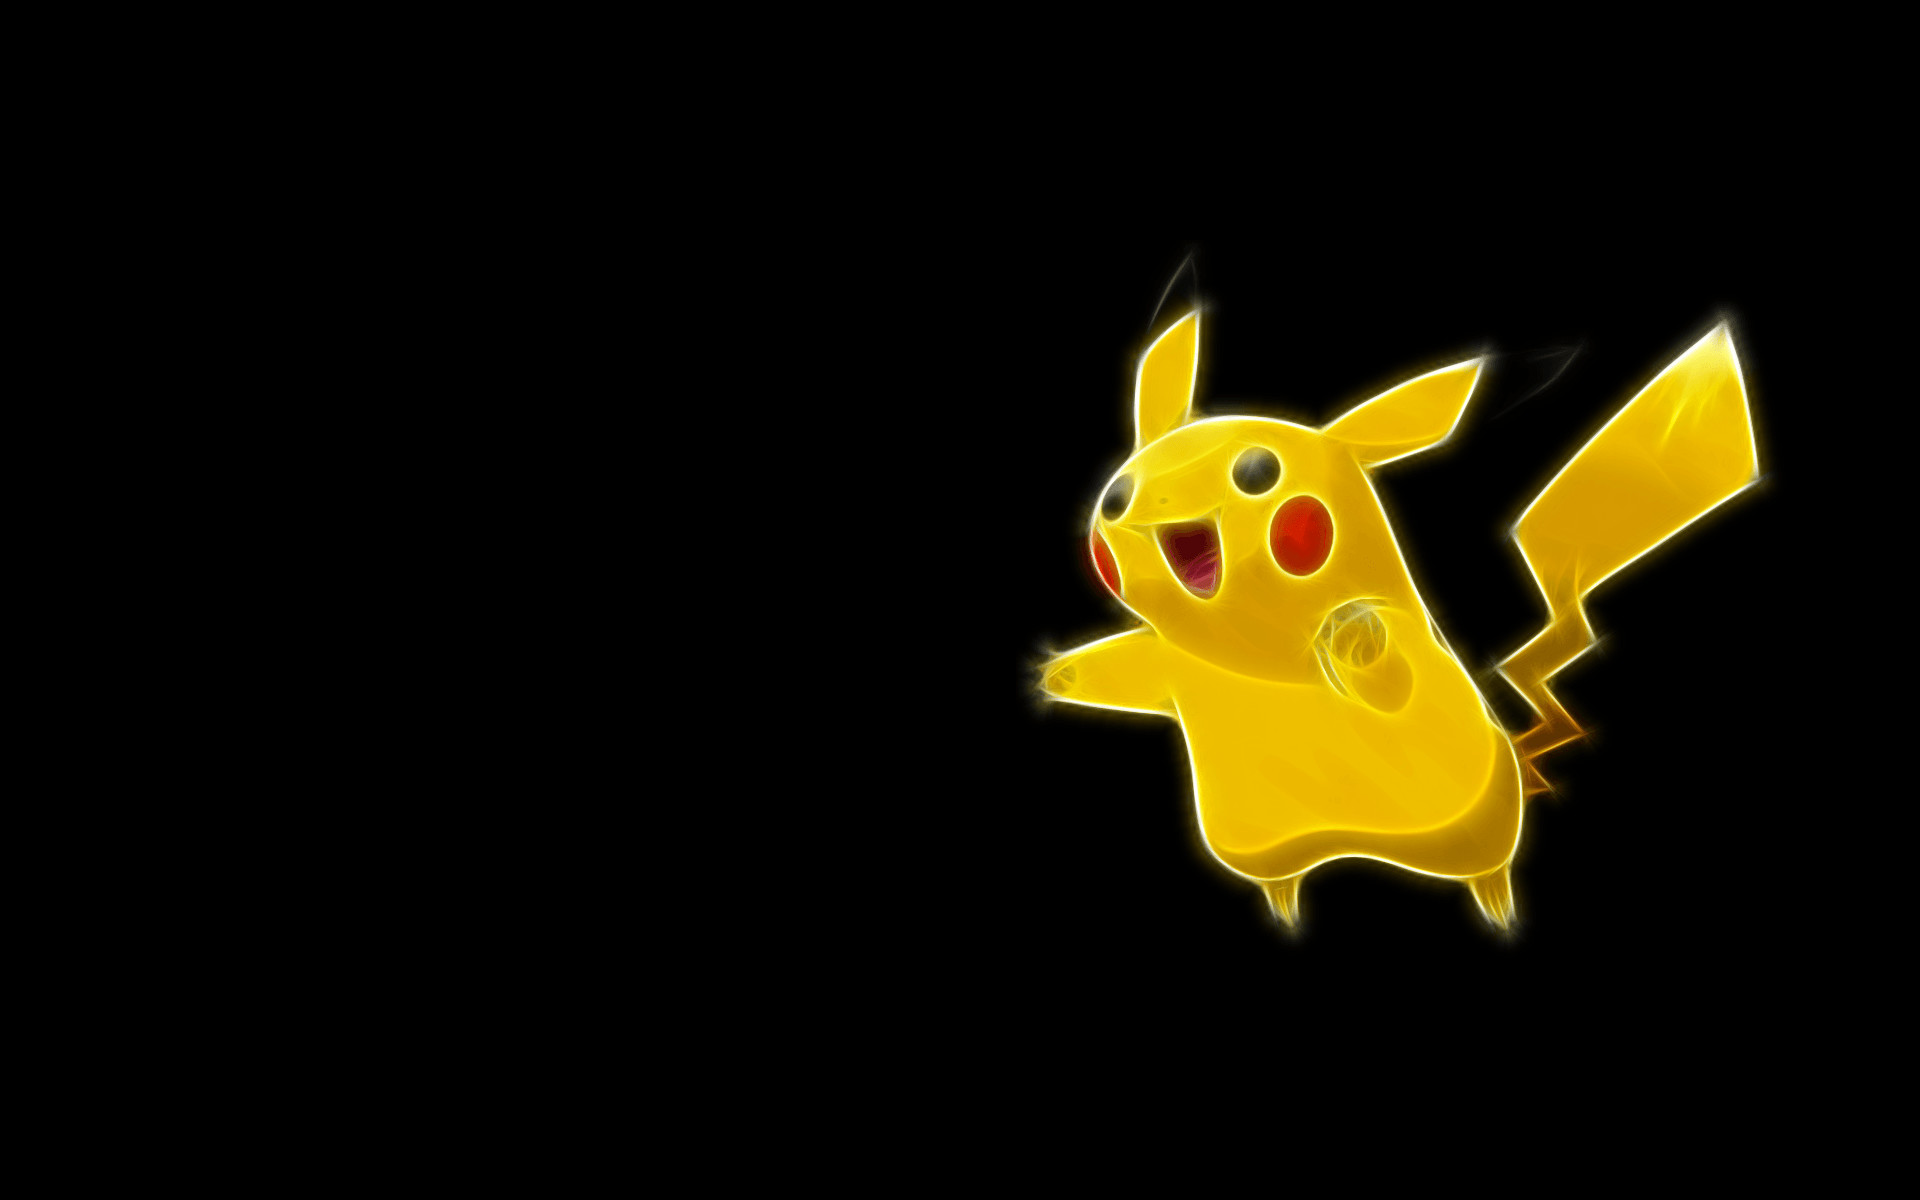 1920x1200 Related Pictures Pokemon Pikachu Wallpapers Pikachu Wallpapers .